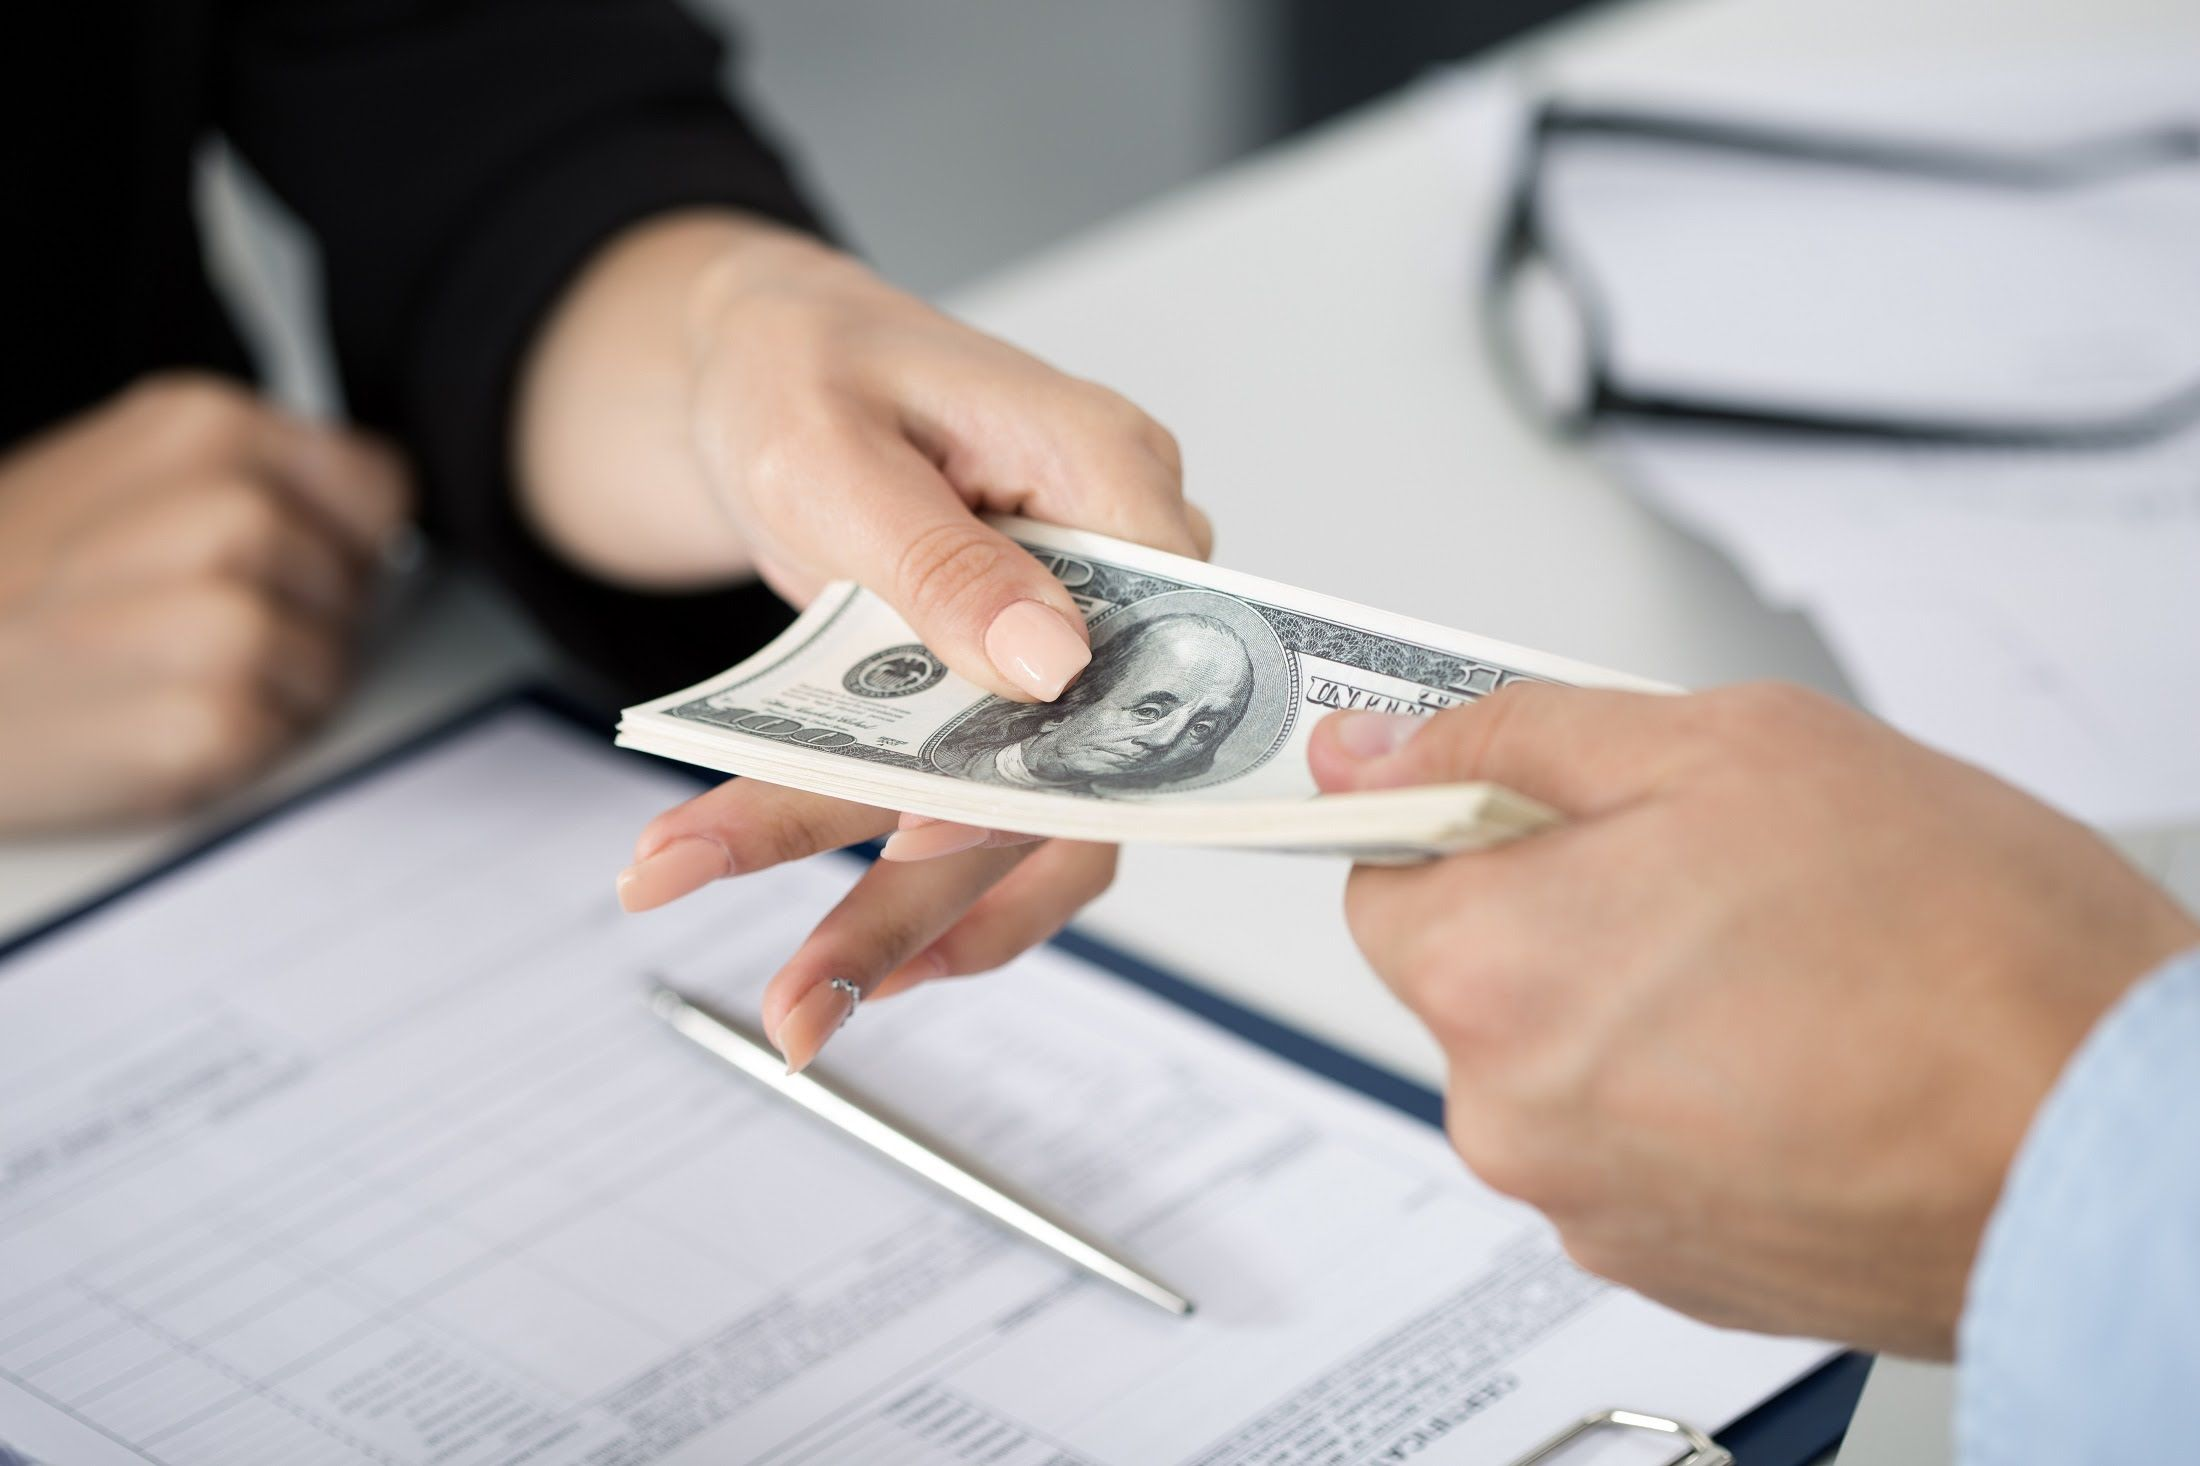 Quick loans (lån snabbt) and without any requirements